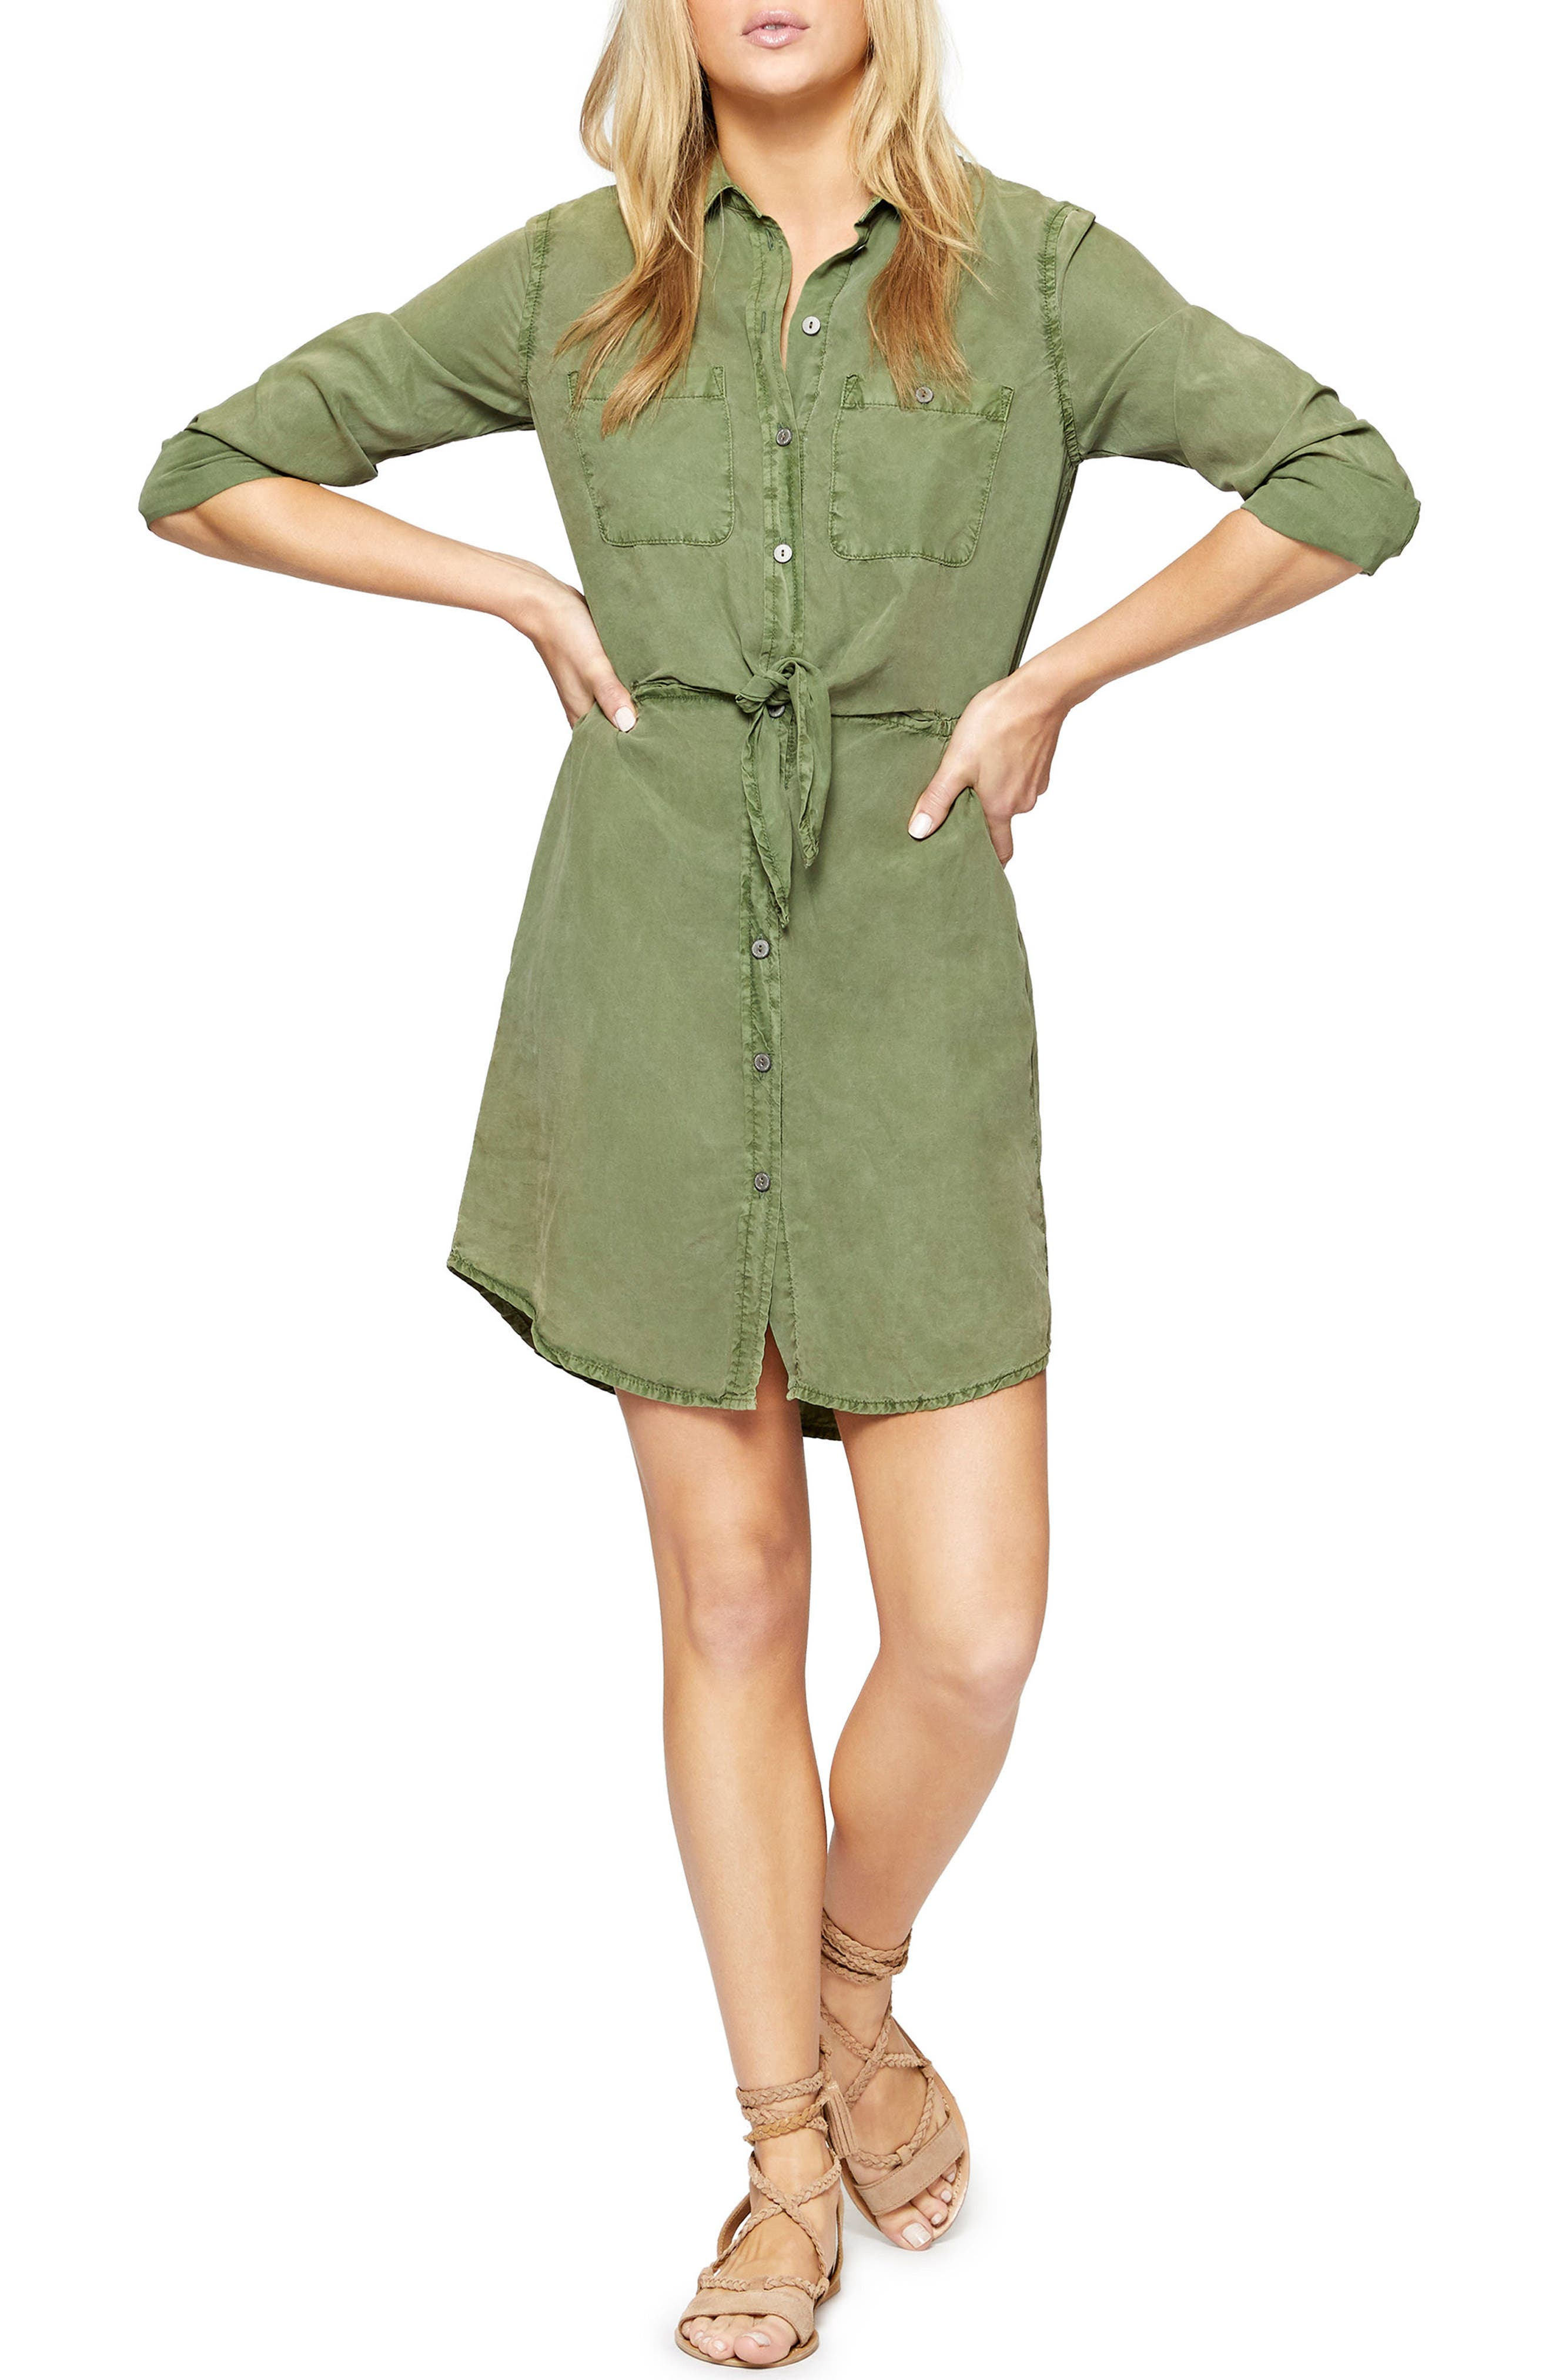 Forget Me Knot Shirtdress,                         Main,                         color, Cadet